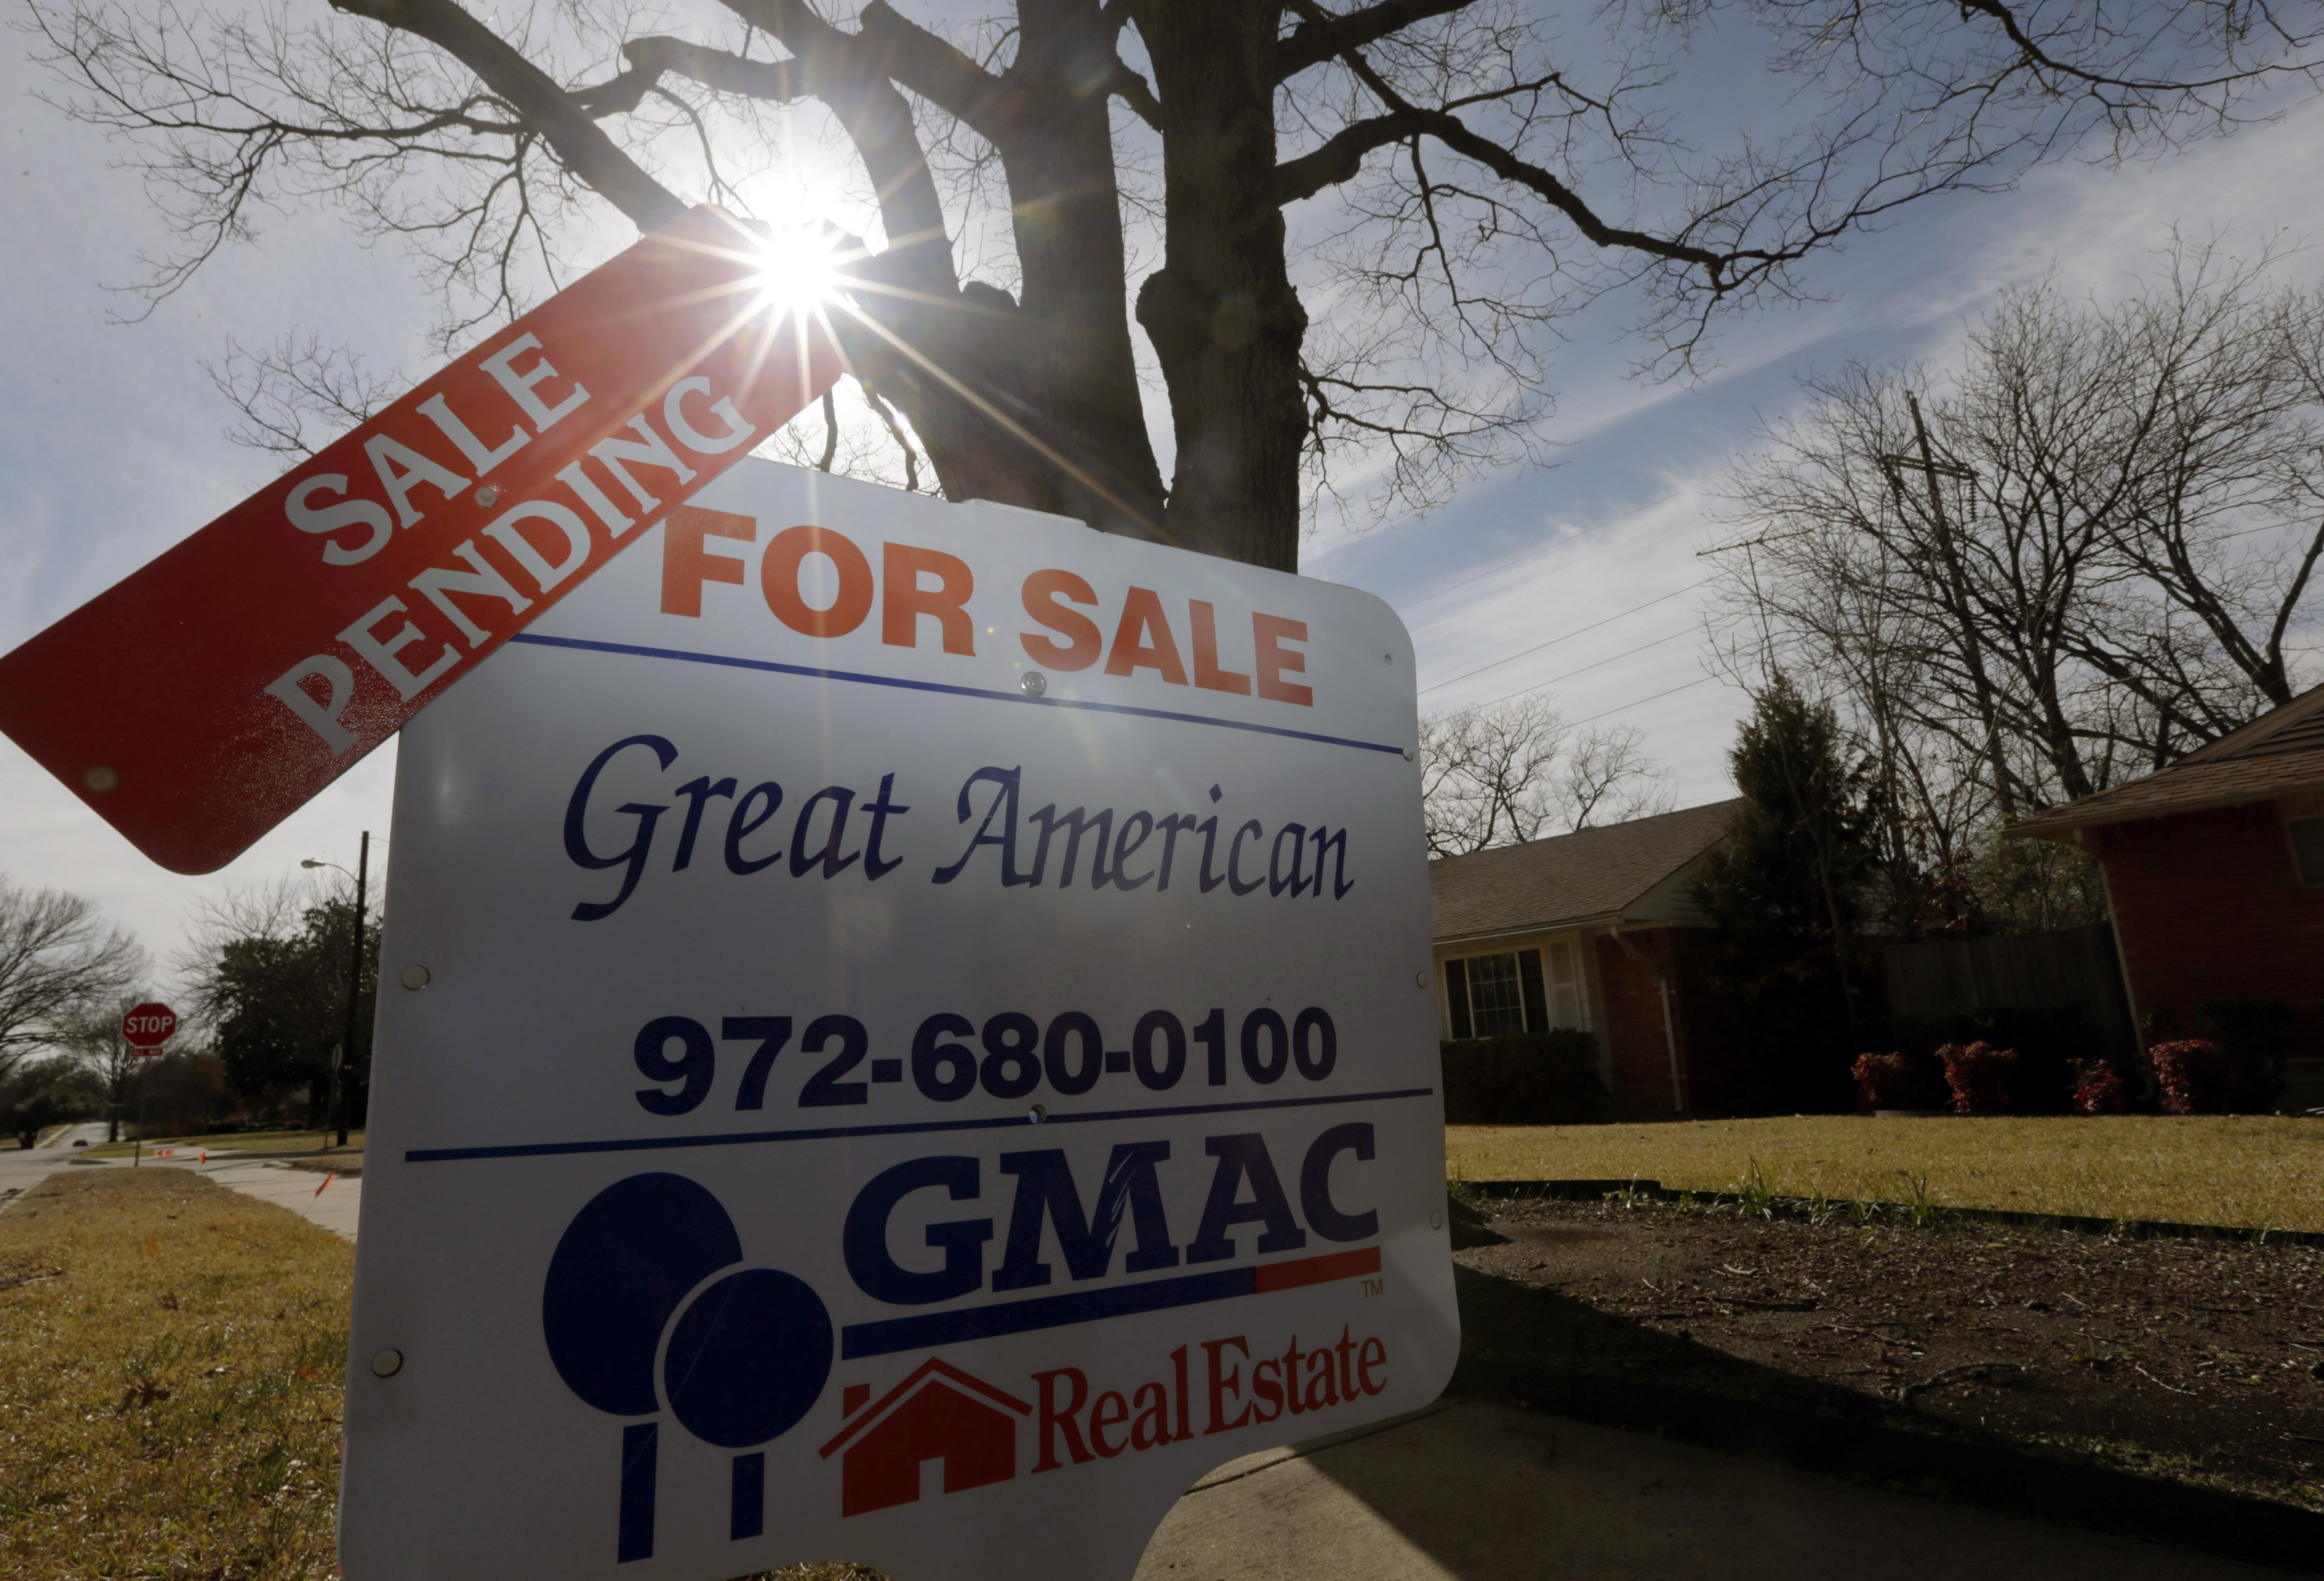 The Federal Housing Administration requires a down payment of 3.5 percent of the purchase price of a home.